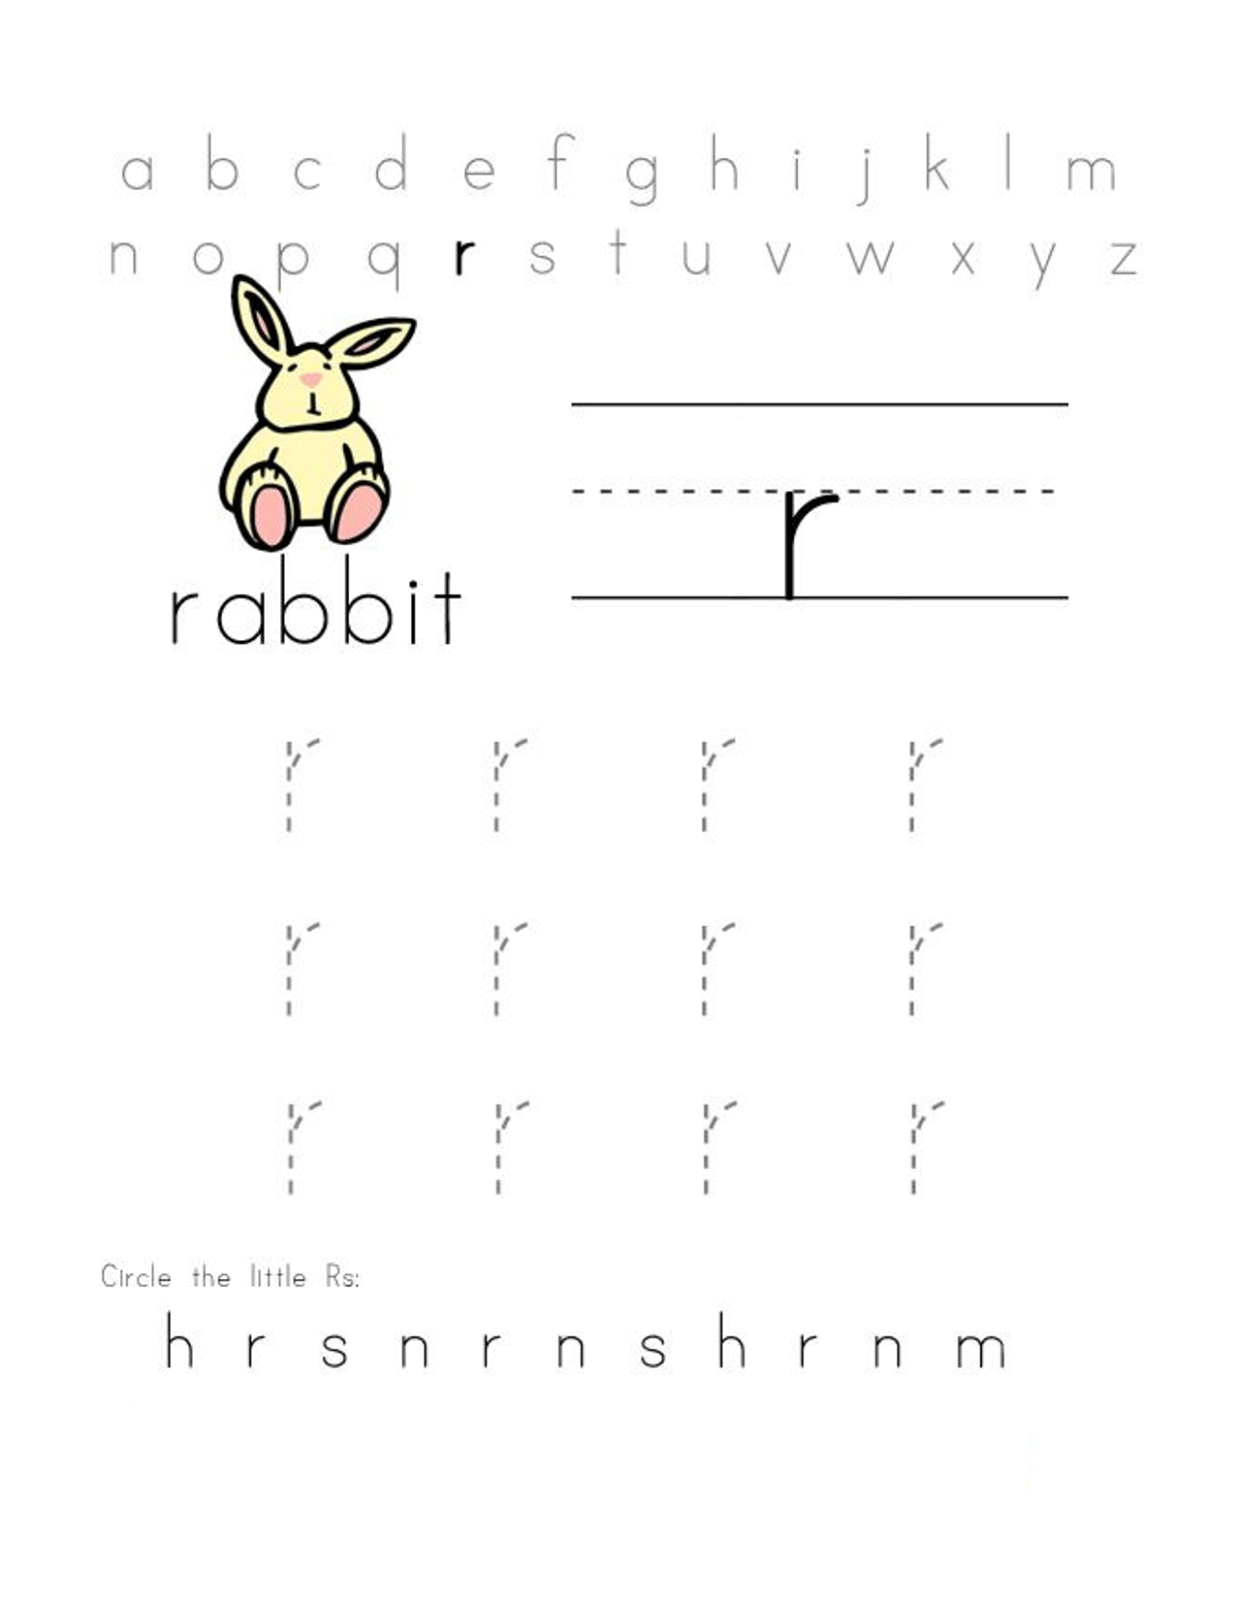 Printable Abc Worksheets Free